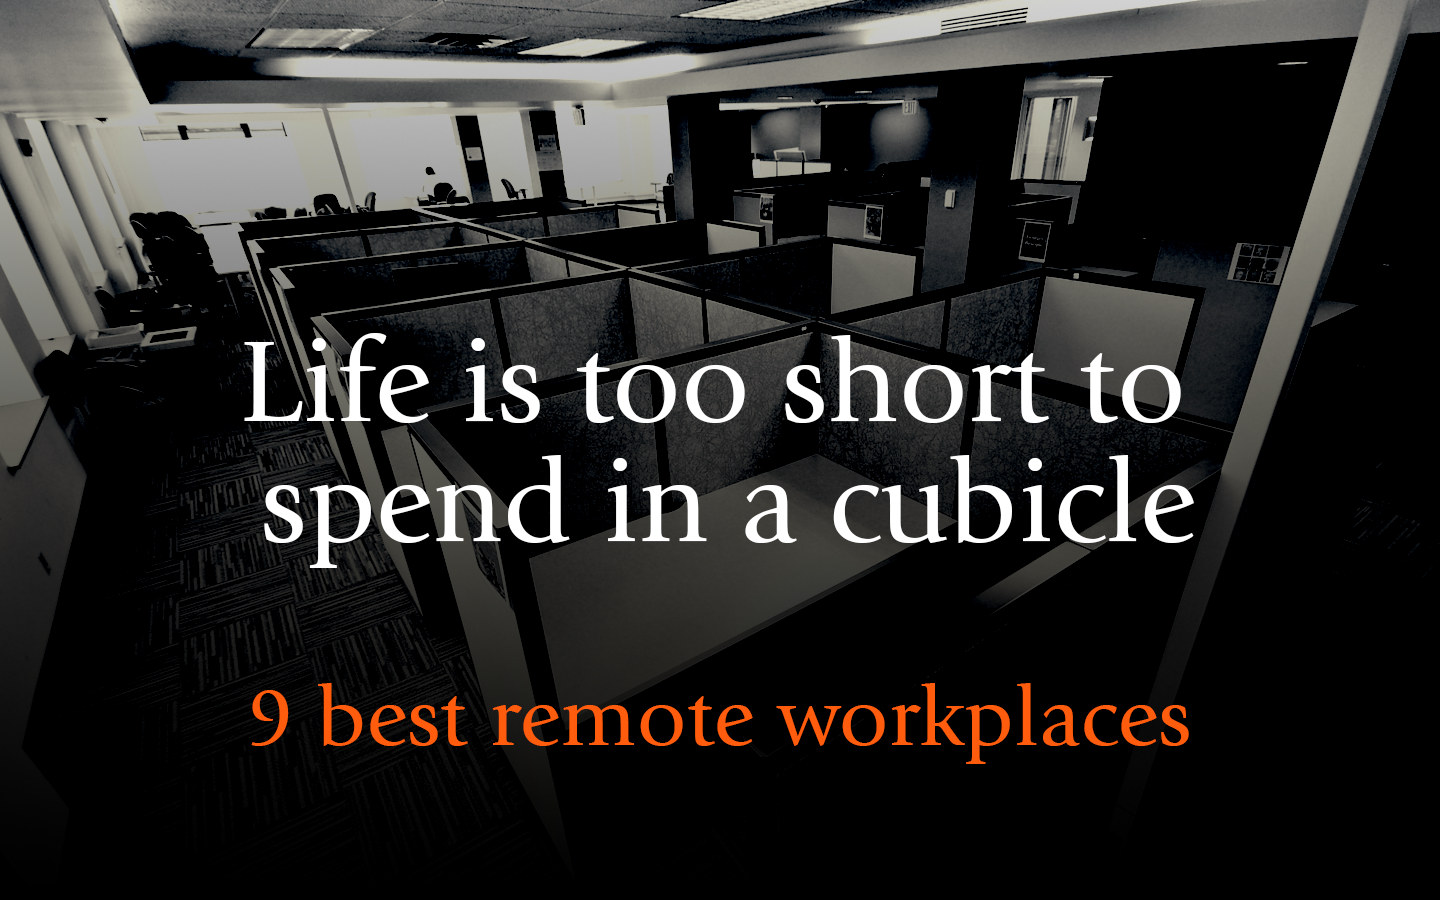 Best remote workplaces: 9 alternatives for working outside your cubicle